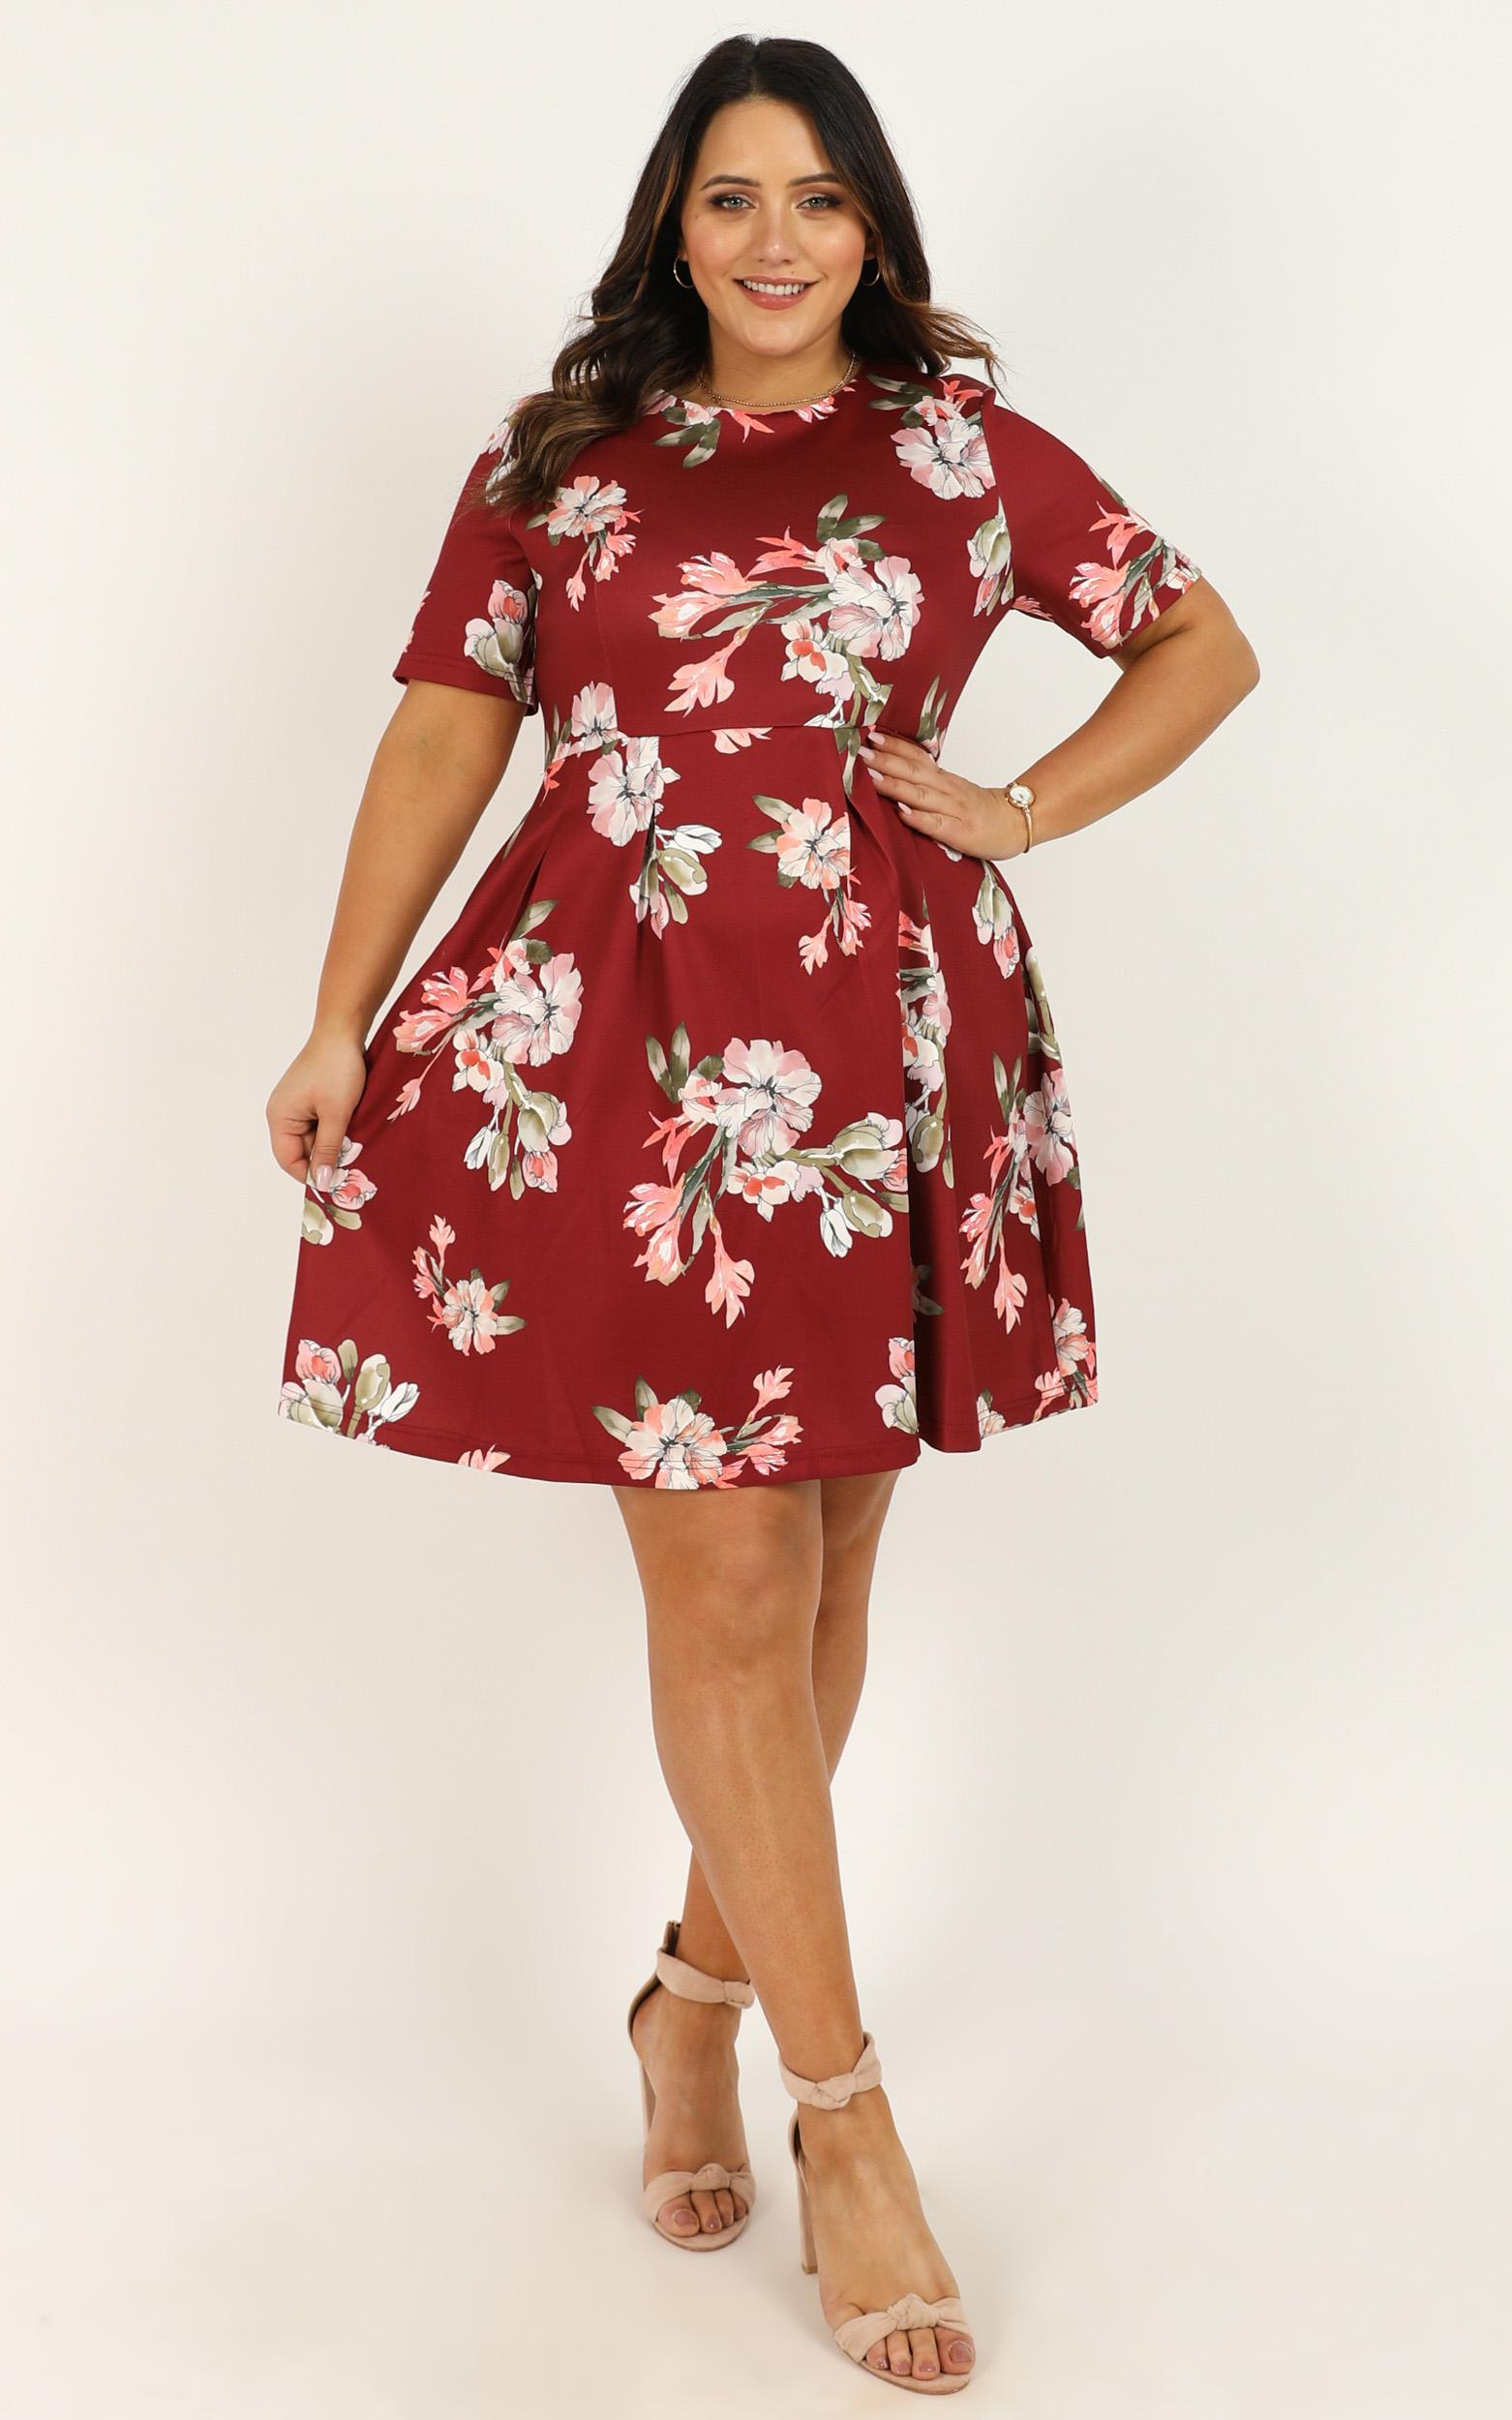 Meet the Parents Dress in  wine floral - 20 (XXXXL), Wine, hi-res image number null